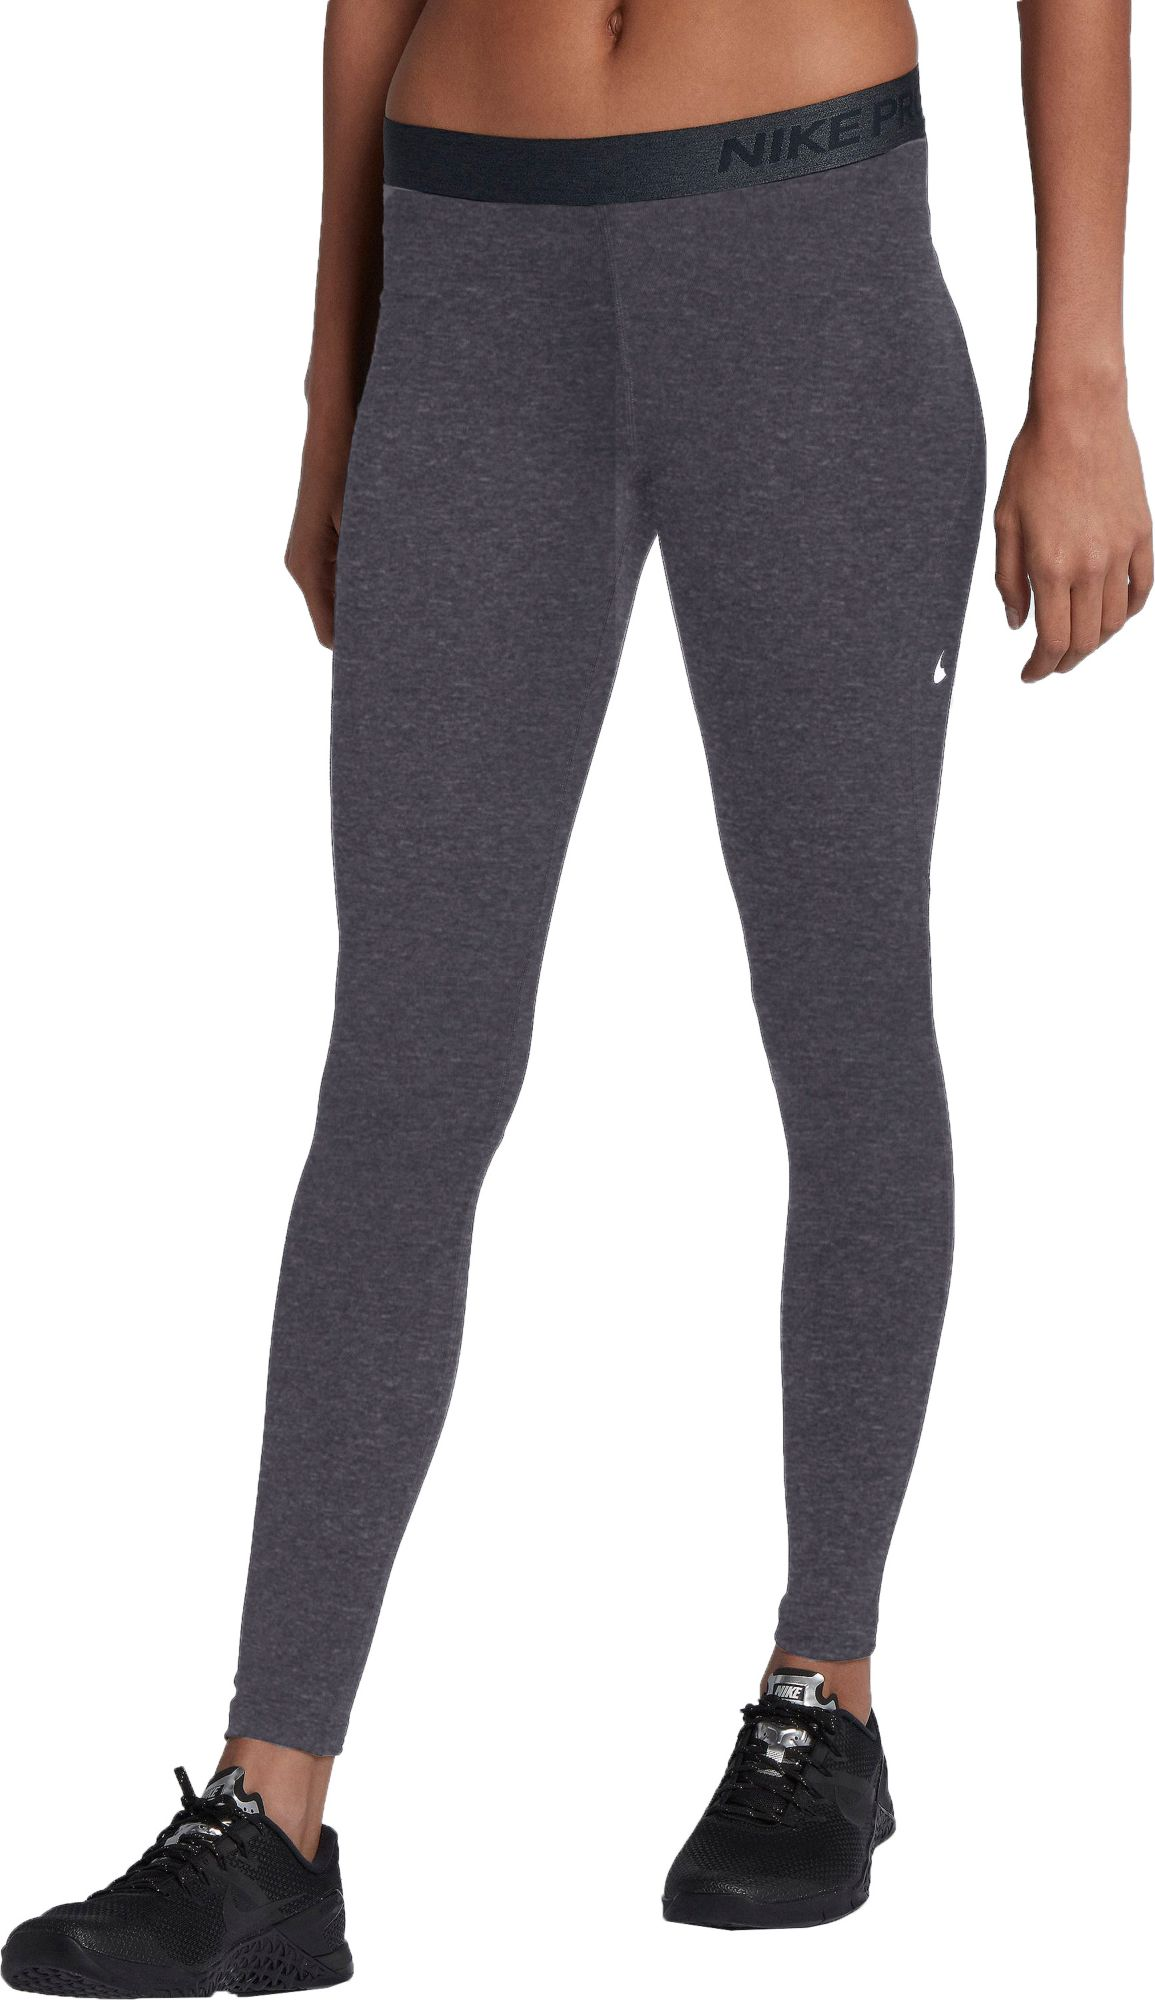 ecf898ac424fb2 Nike Women's Pro Warm Training Tights | DICK'S Sporting ...